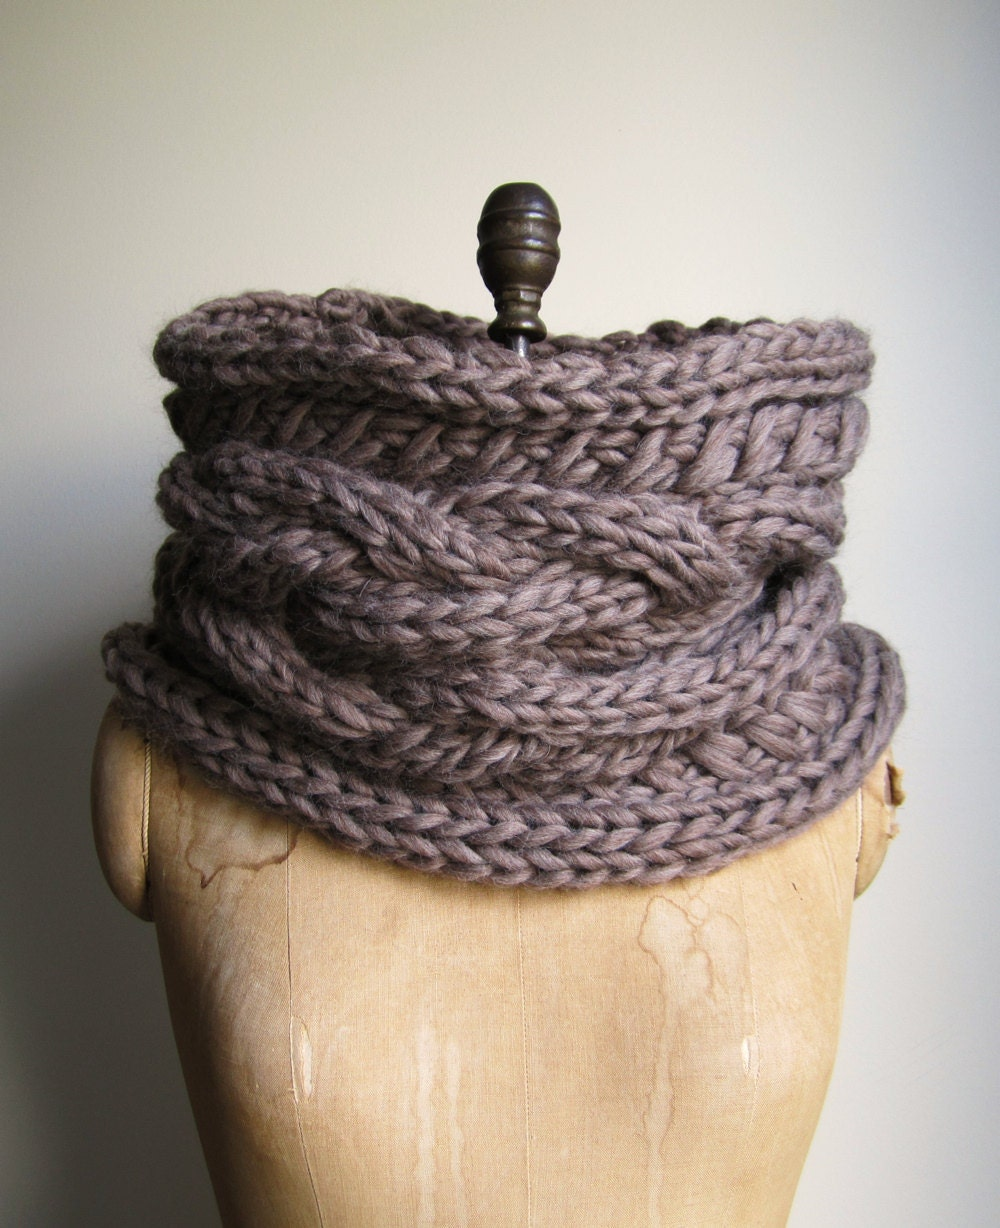 Knitted Infinity Cowl Pattern : Oversized Cable knit cowl Walnut. Infinity scarf by Happiknits